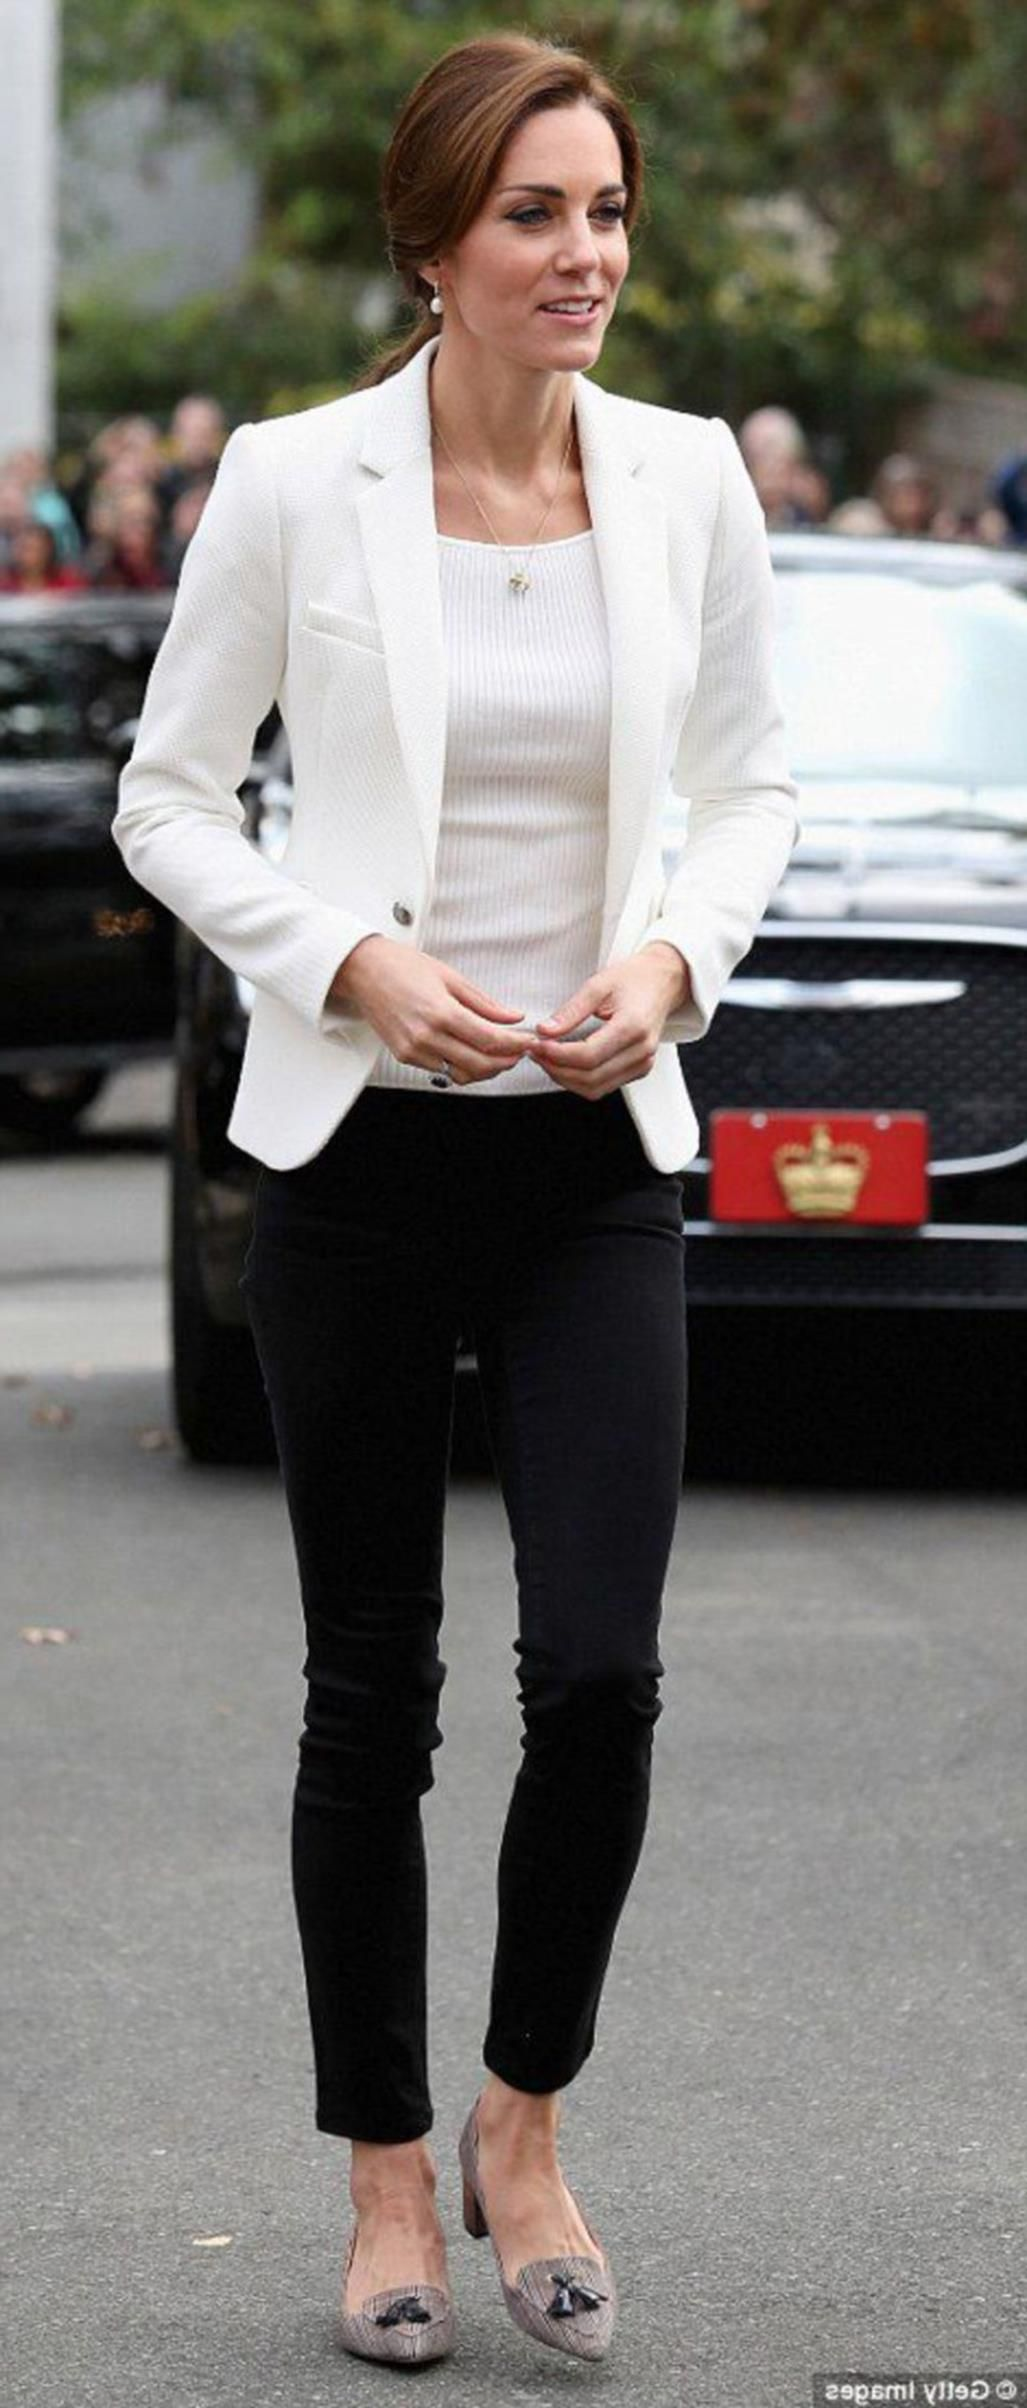 30+ Elegant Business Casual Outfits